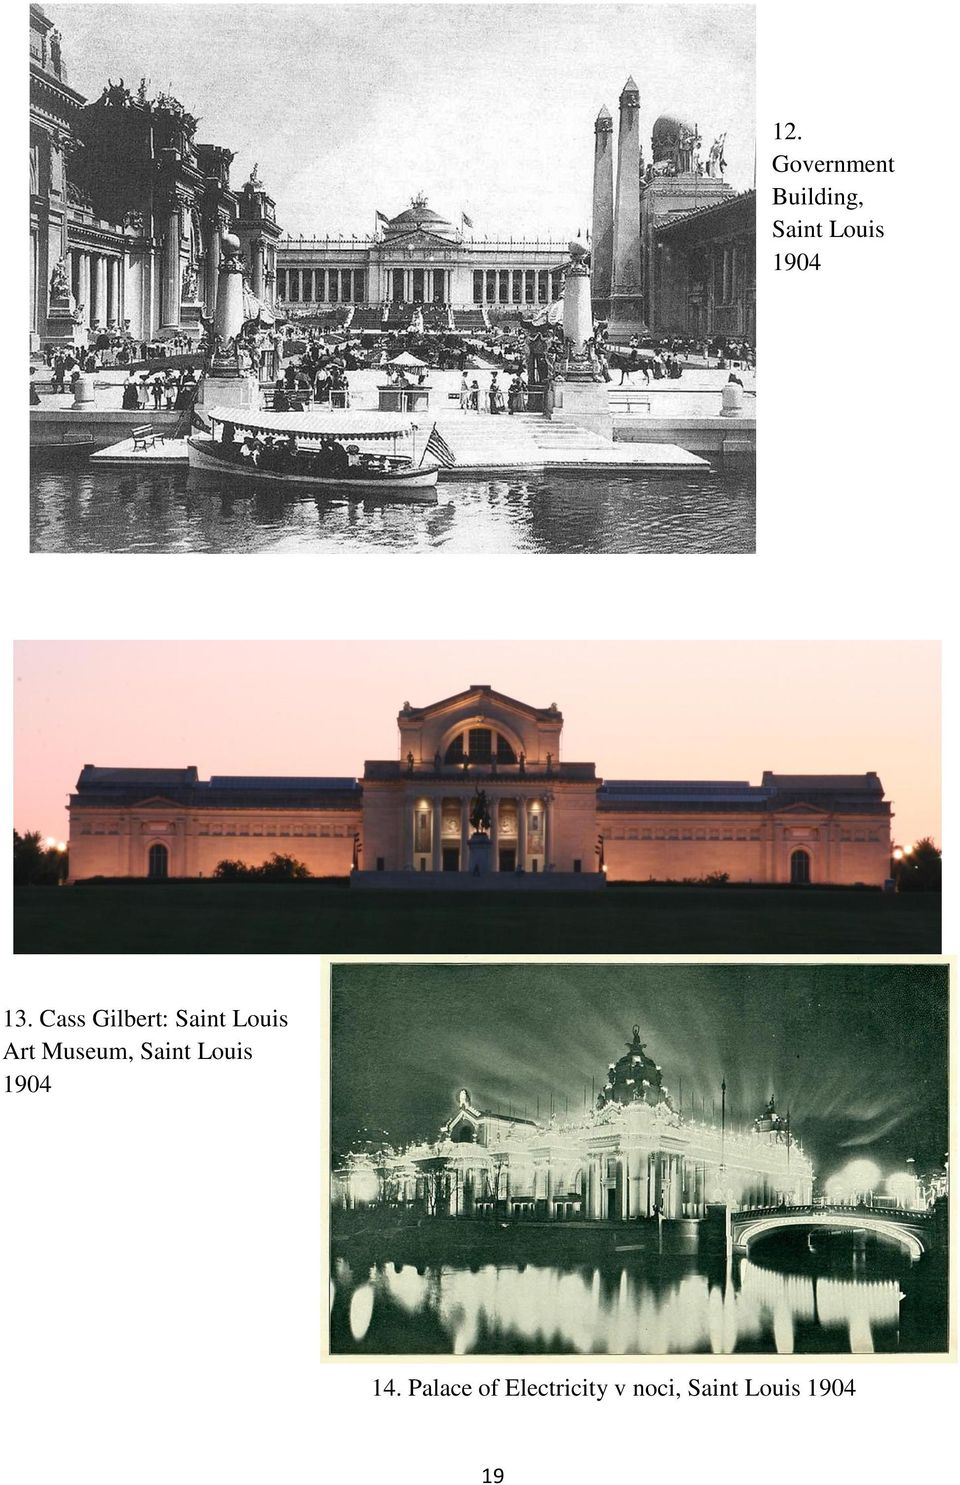 Cass Gilbert: Saint Louis Art Museum,